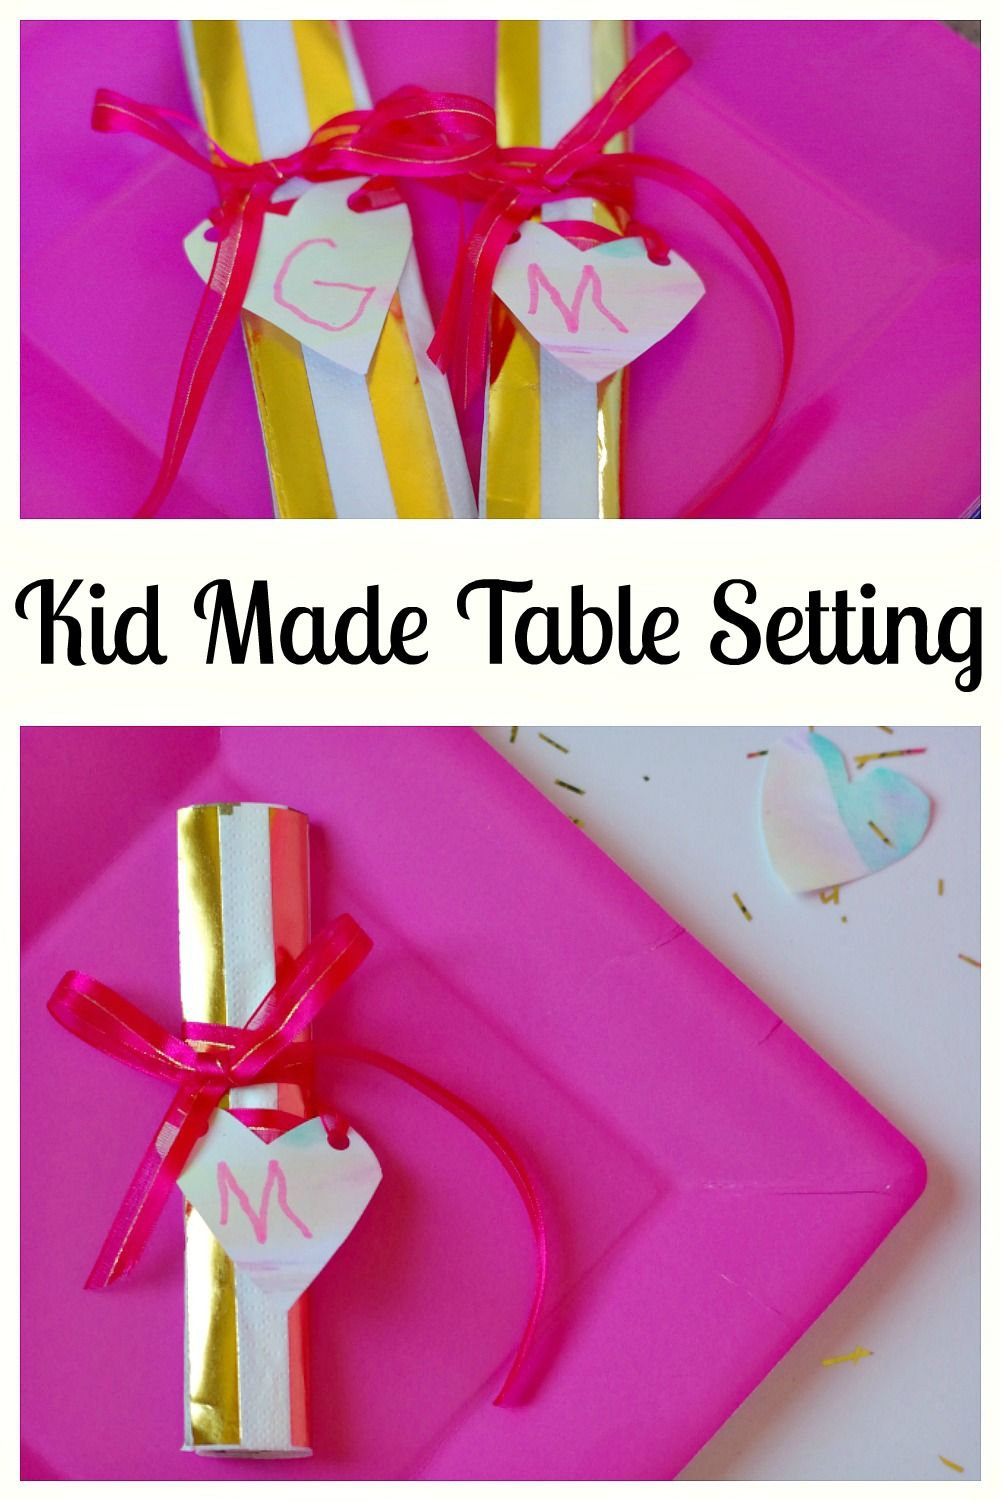 Kid Made Table Setting For Mother\'s Day | Activities, Birthdays and ...